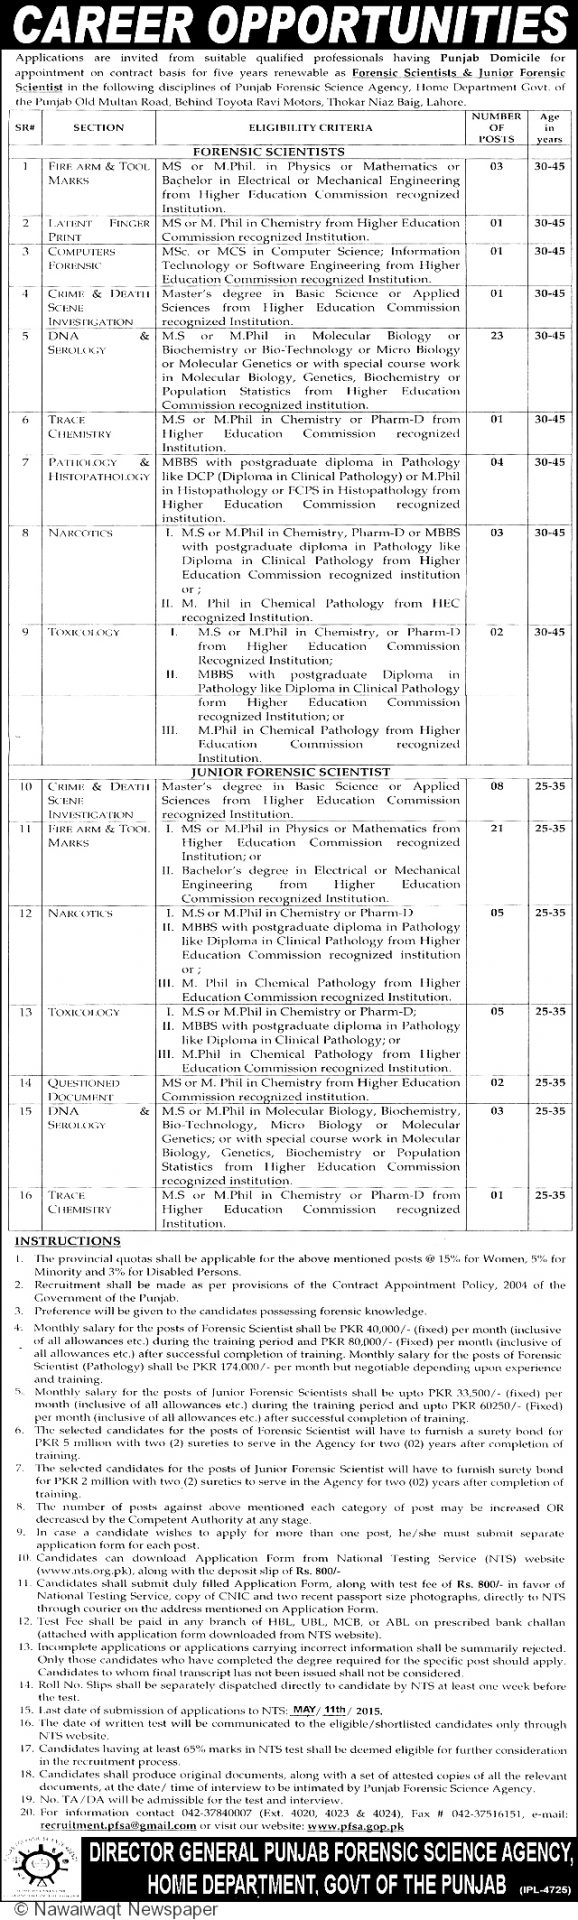 Punjab Forensic Science Agency Jobs 2015 Home Department NTS Form Online